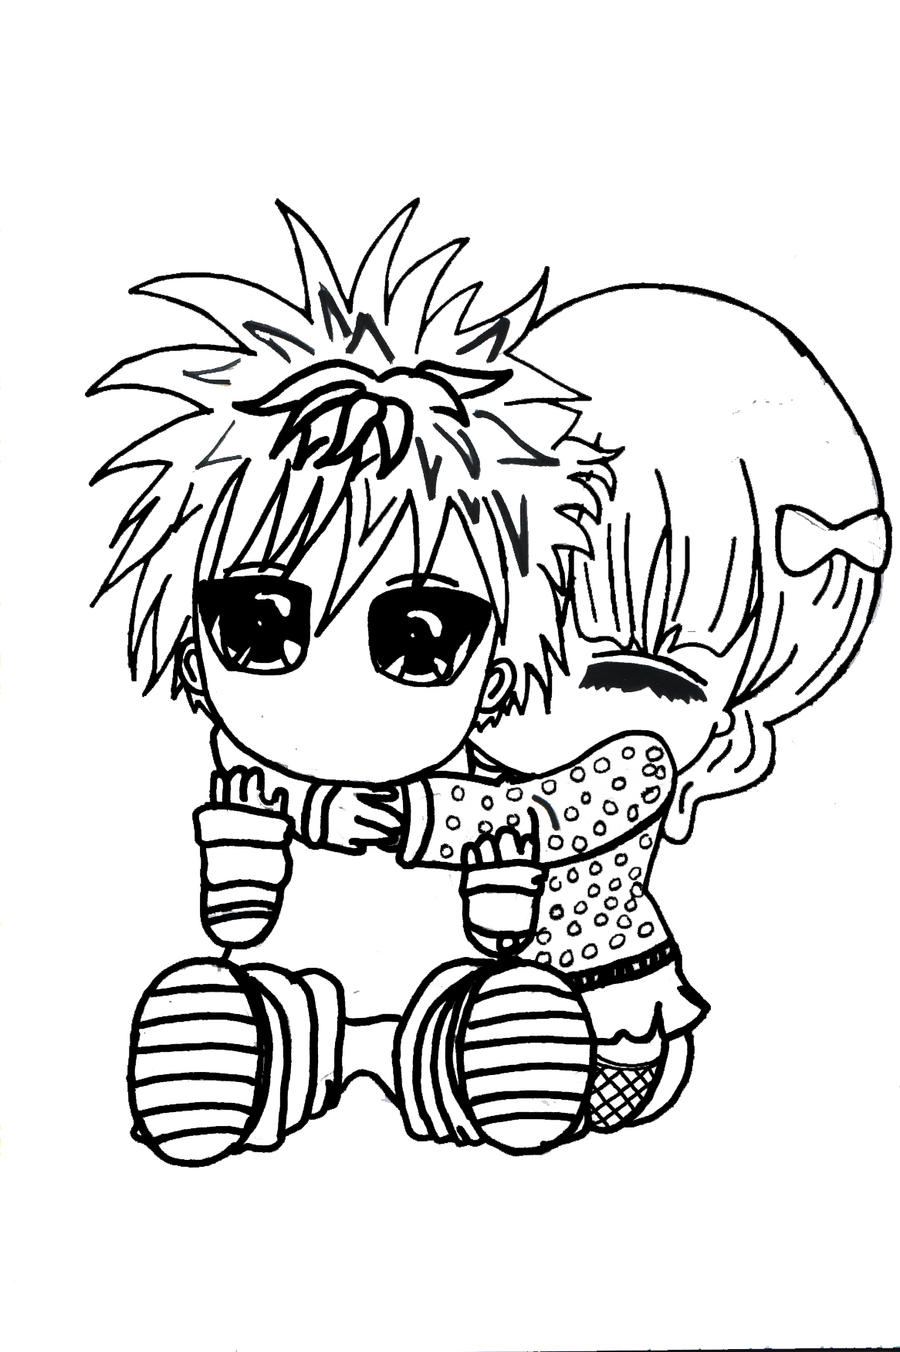 Emo chibi coloring pages